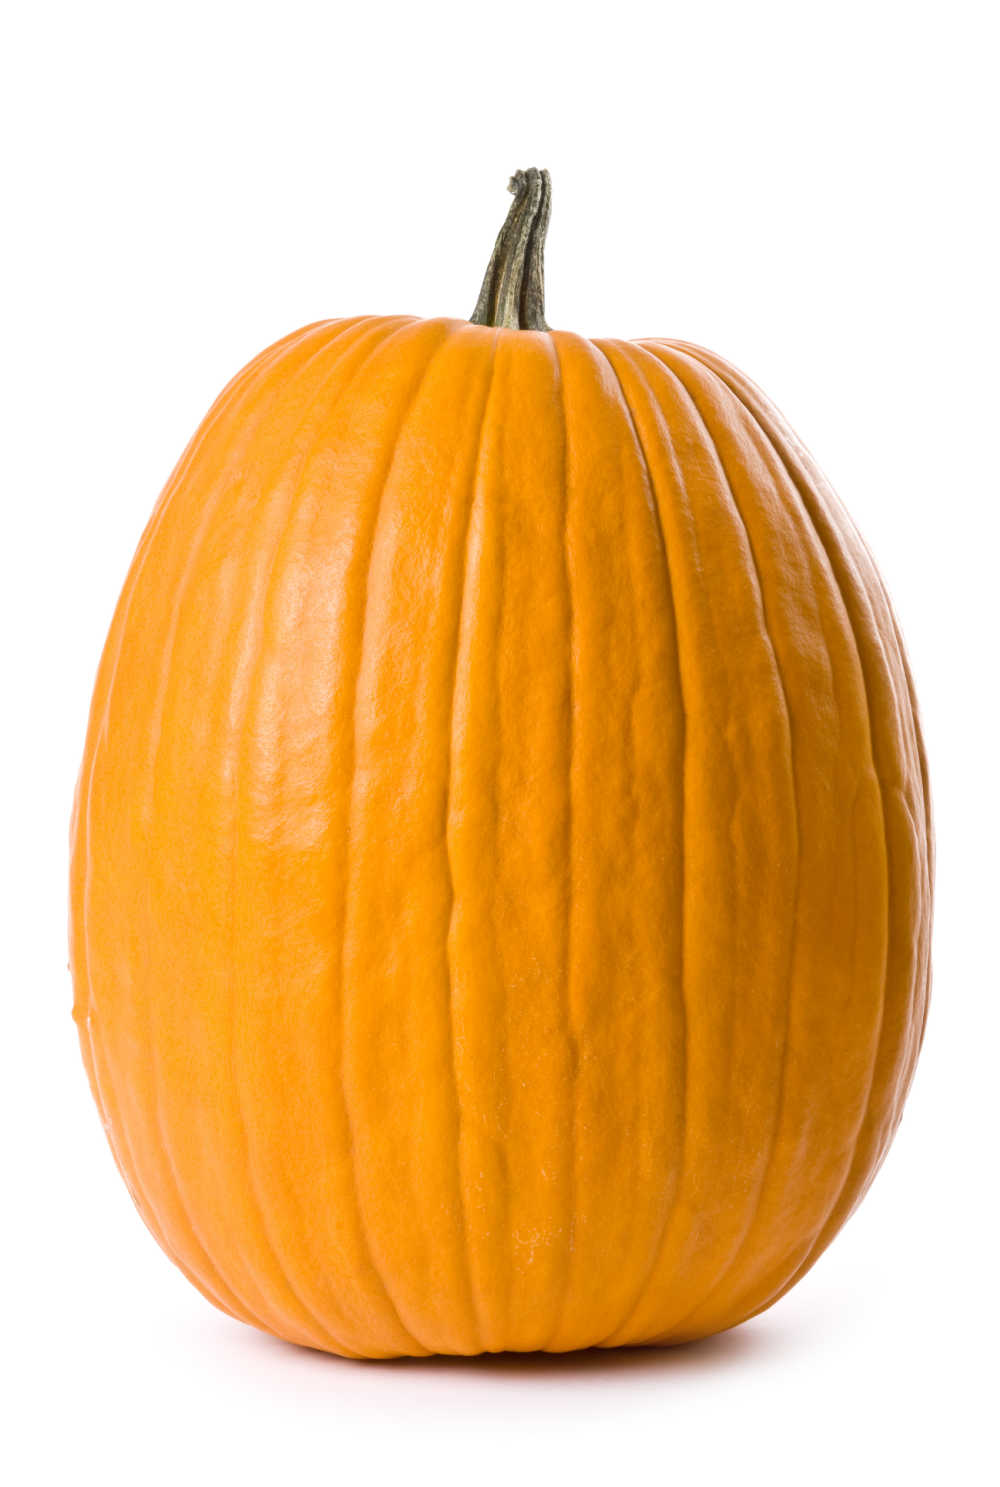 Tall, upright pumpkin on a white background.